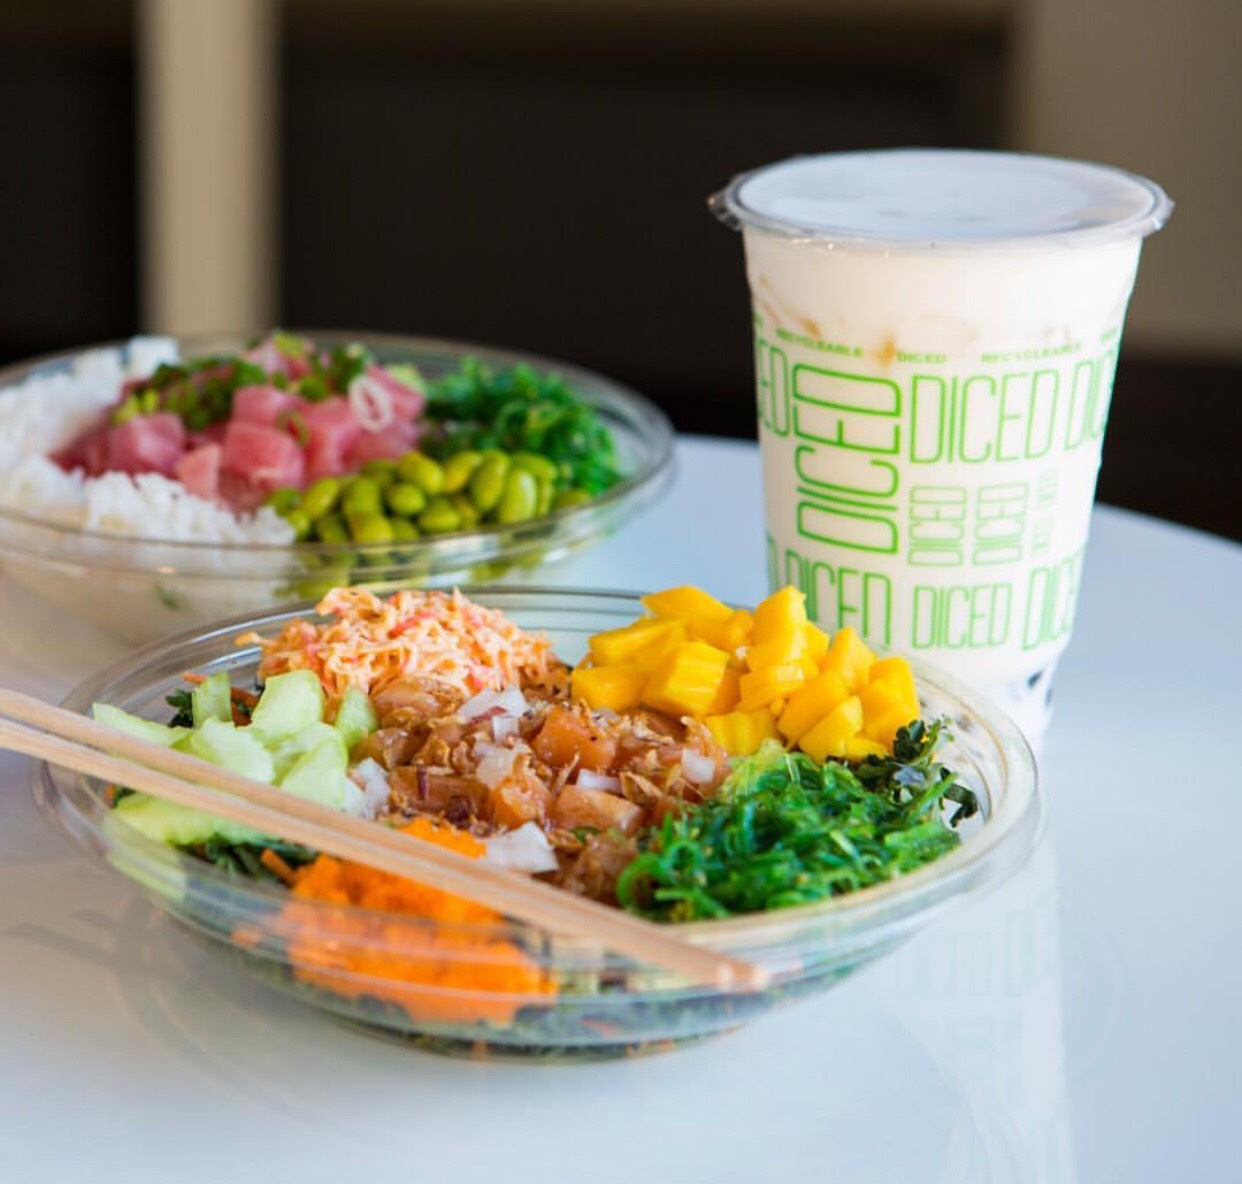 Dec. 20 - 23 | Dice Poke Opens In Fullerton - BOGO Free Deals and More!